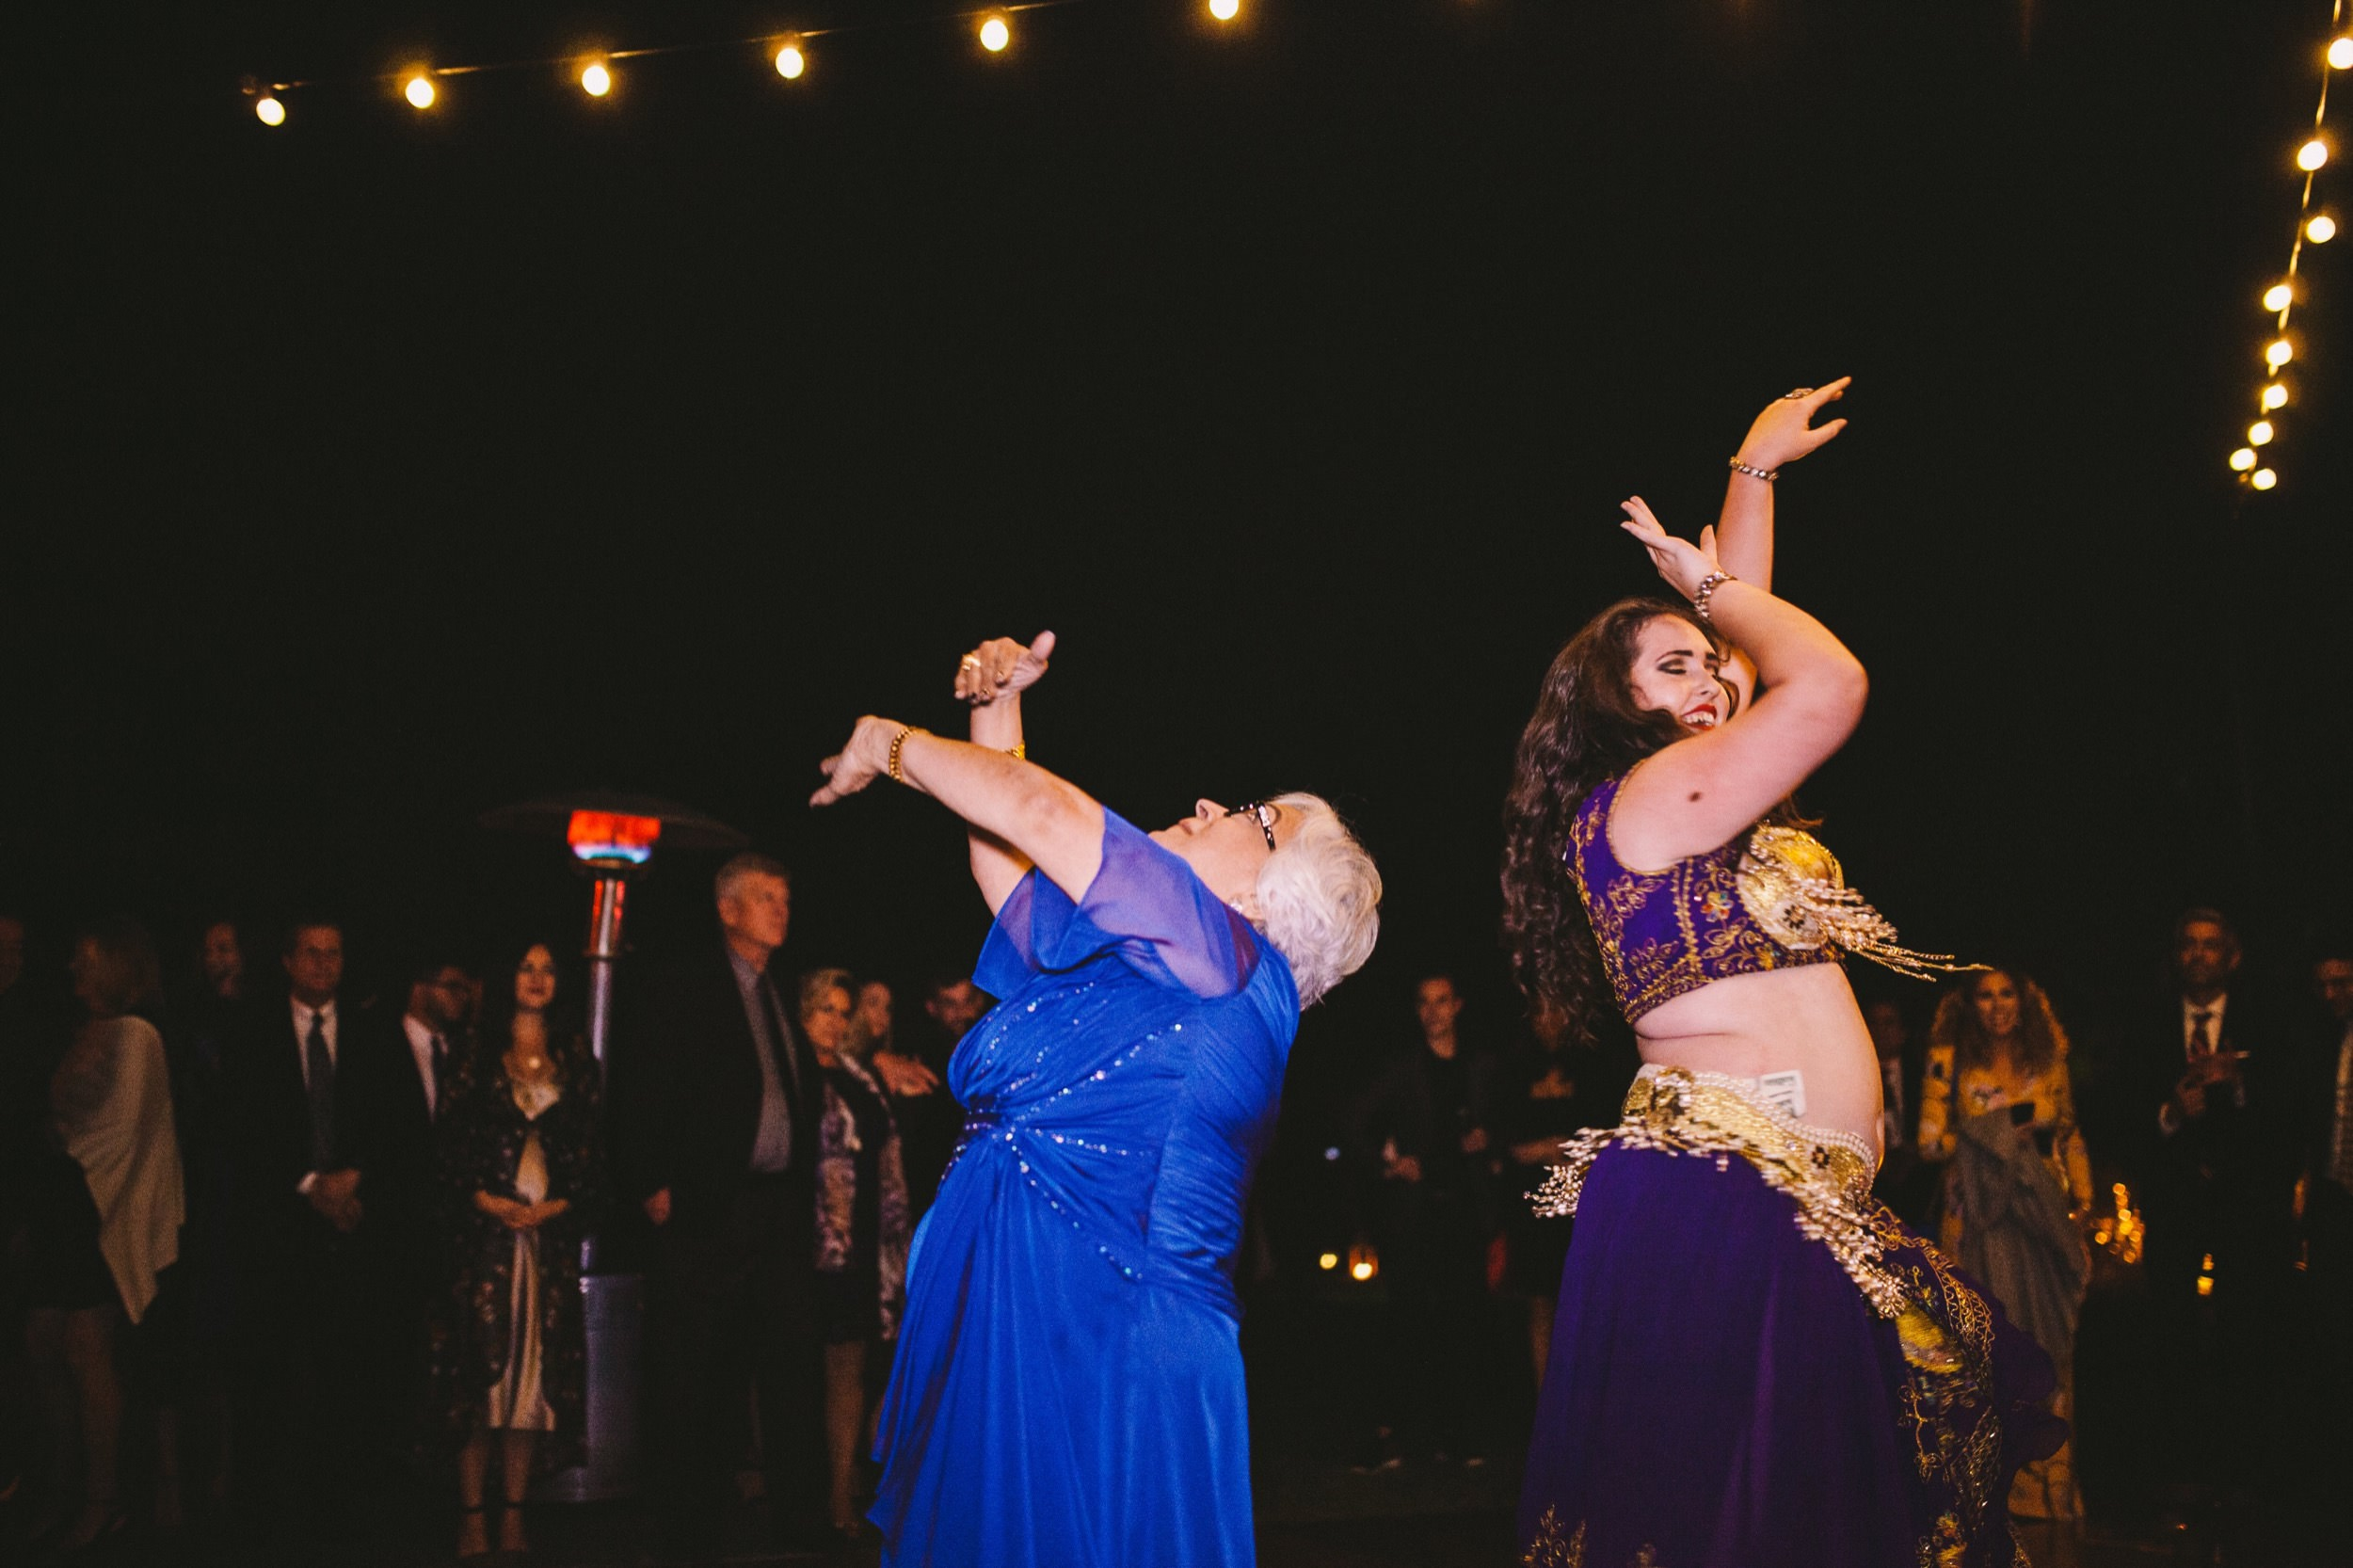 'The Dancing Belly' - Persian Wedding Belly Dancer